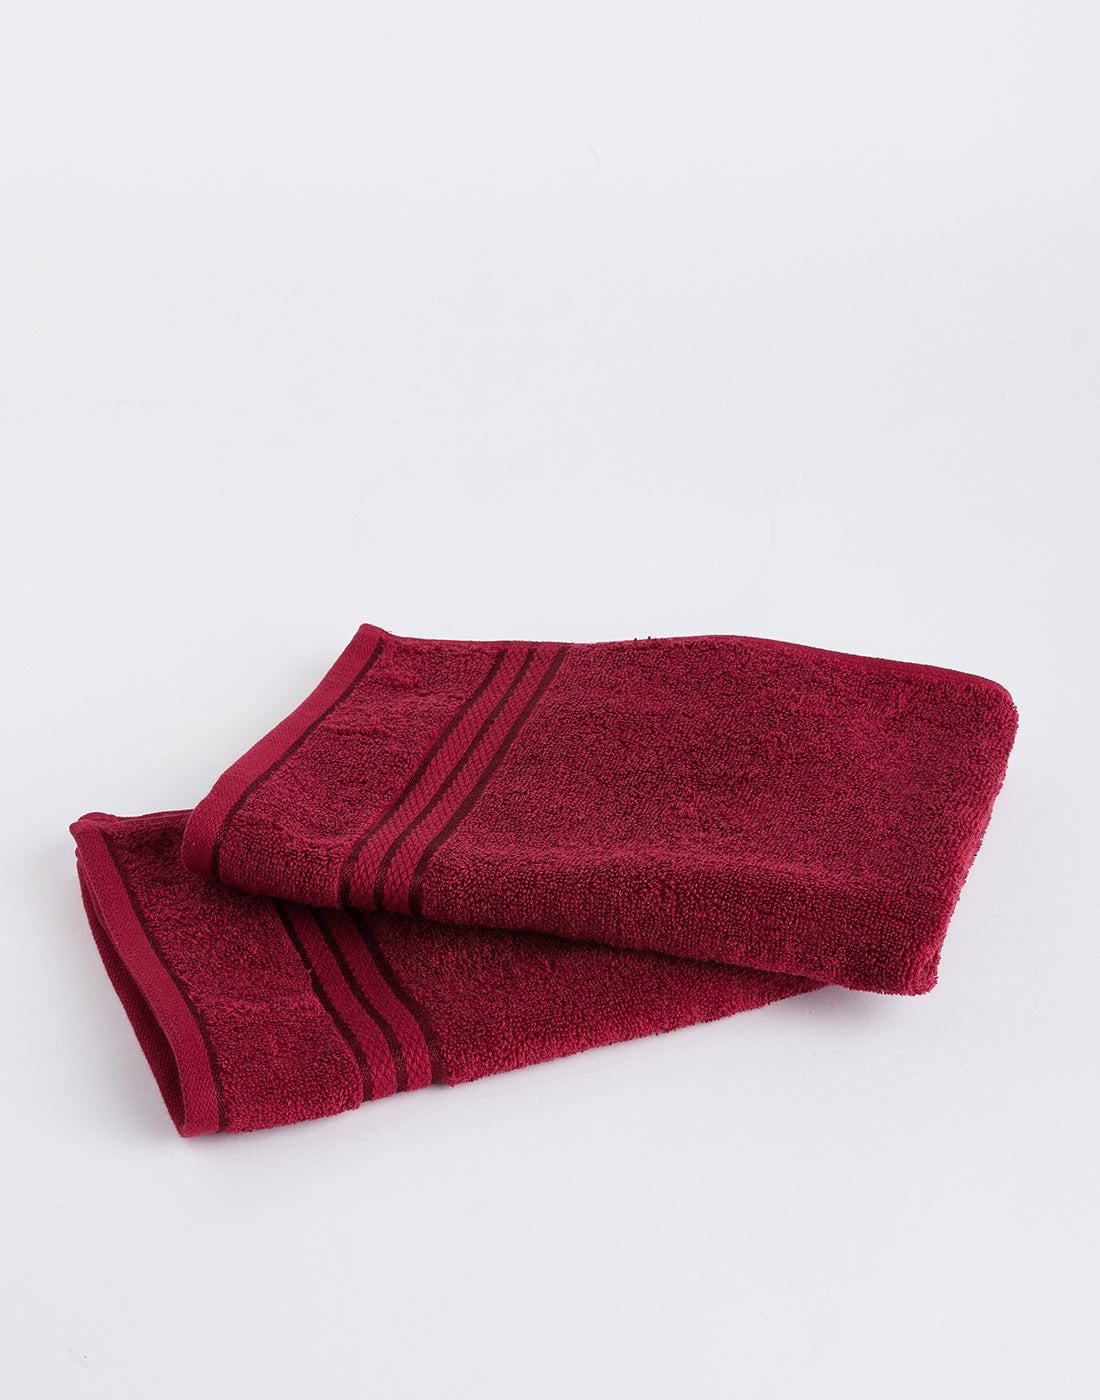 Octave Salsa Red Set of 2 Cotton Hand Towels